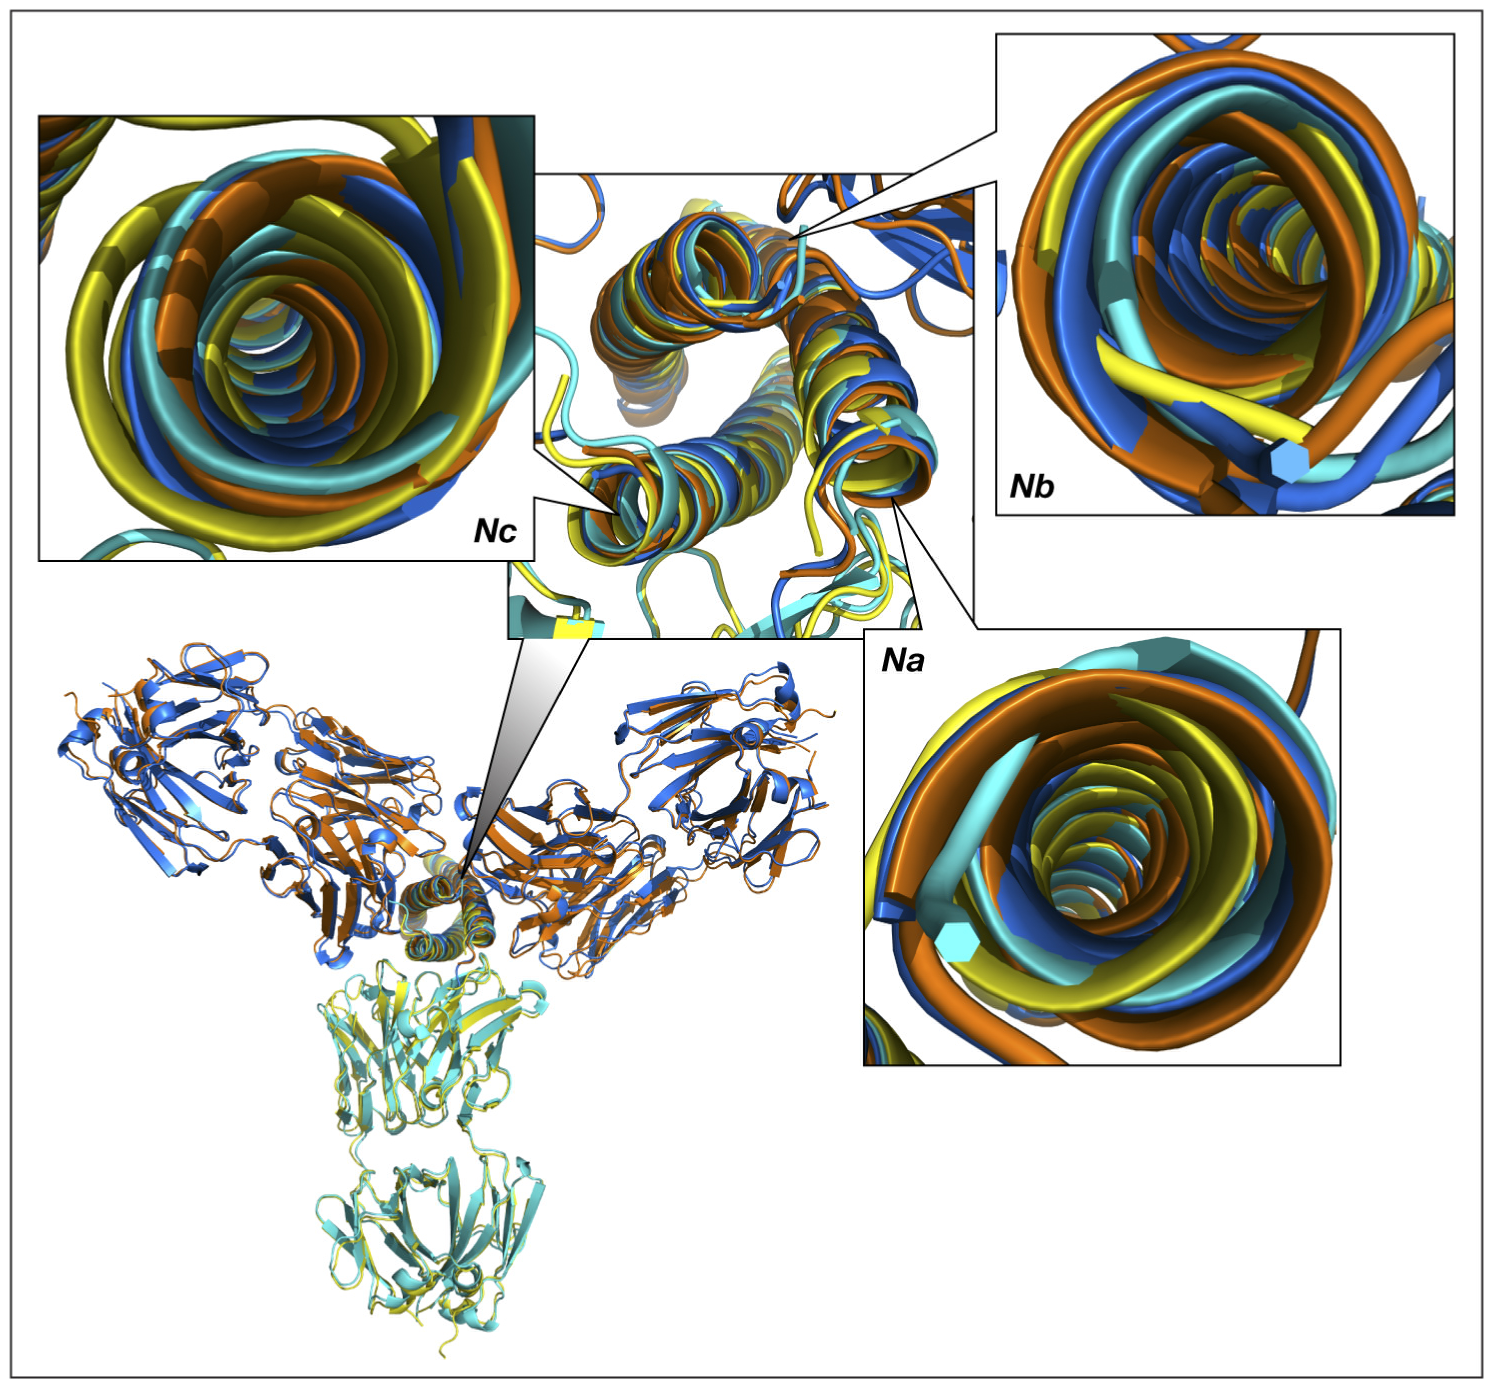 Superimposed models of the complexes of the trimer of N-HR helices of gp41 with three Fab molecules, built by sequentially superimposing two pairs of helices.